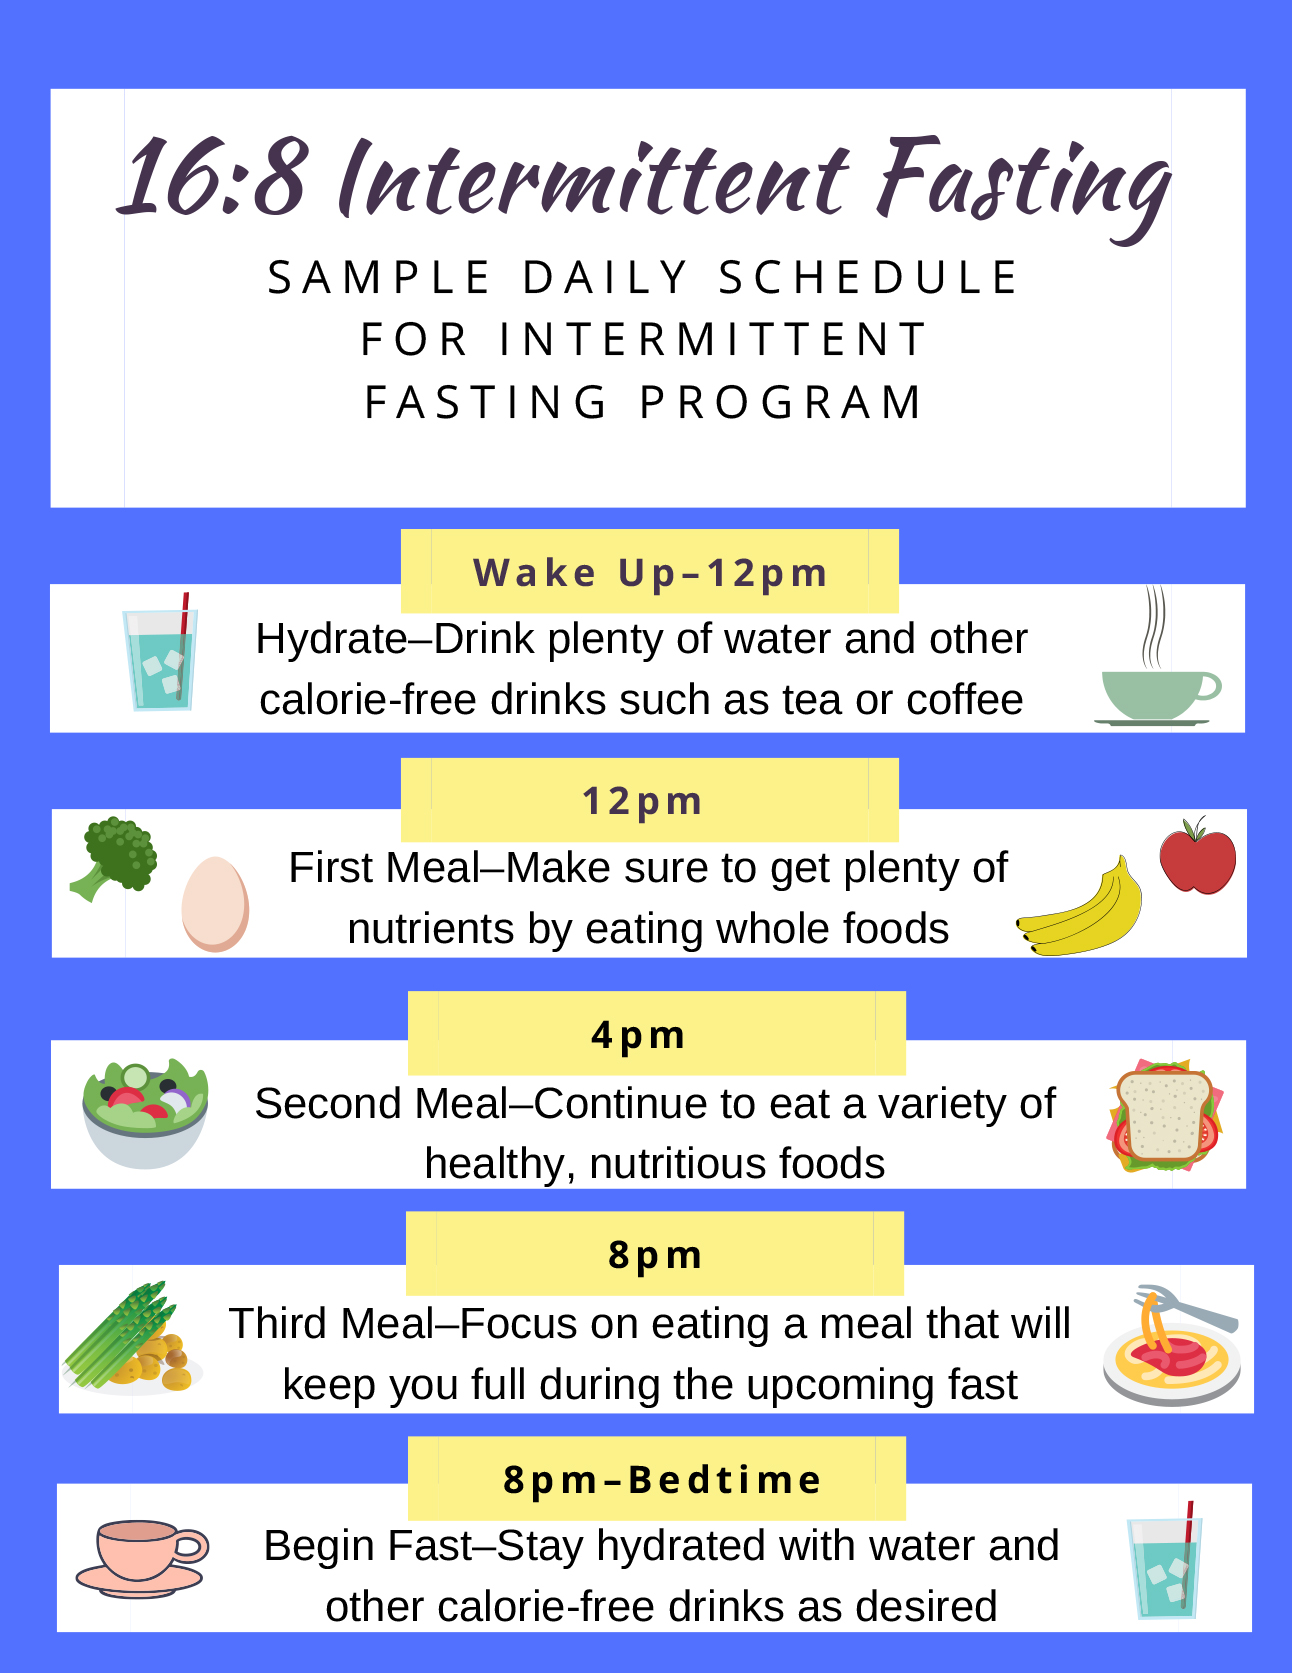 intermittent fasting daily schedule sample